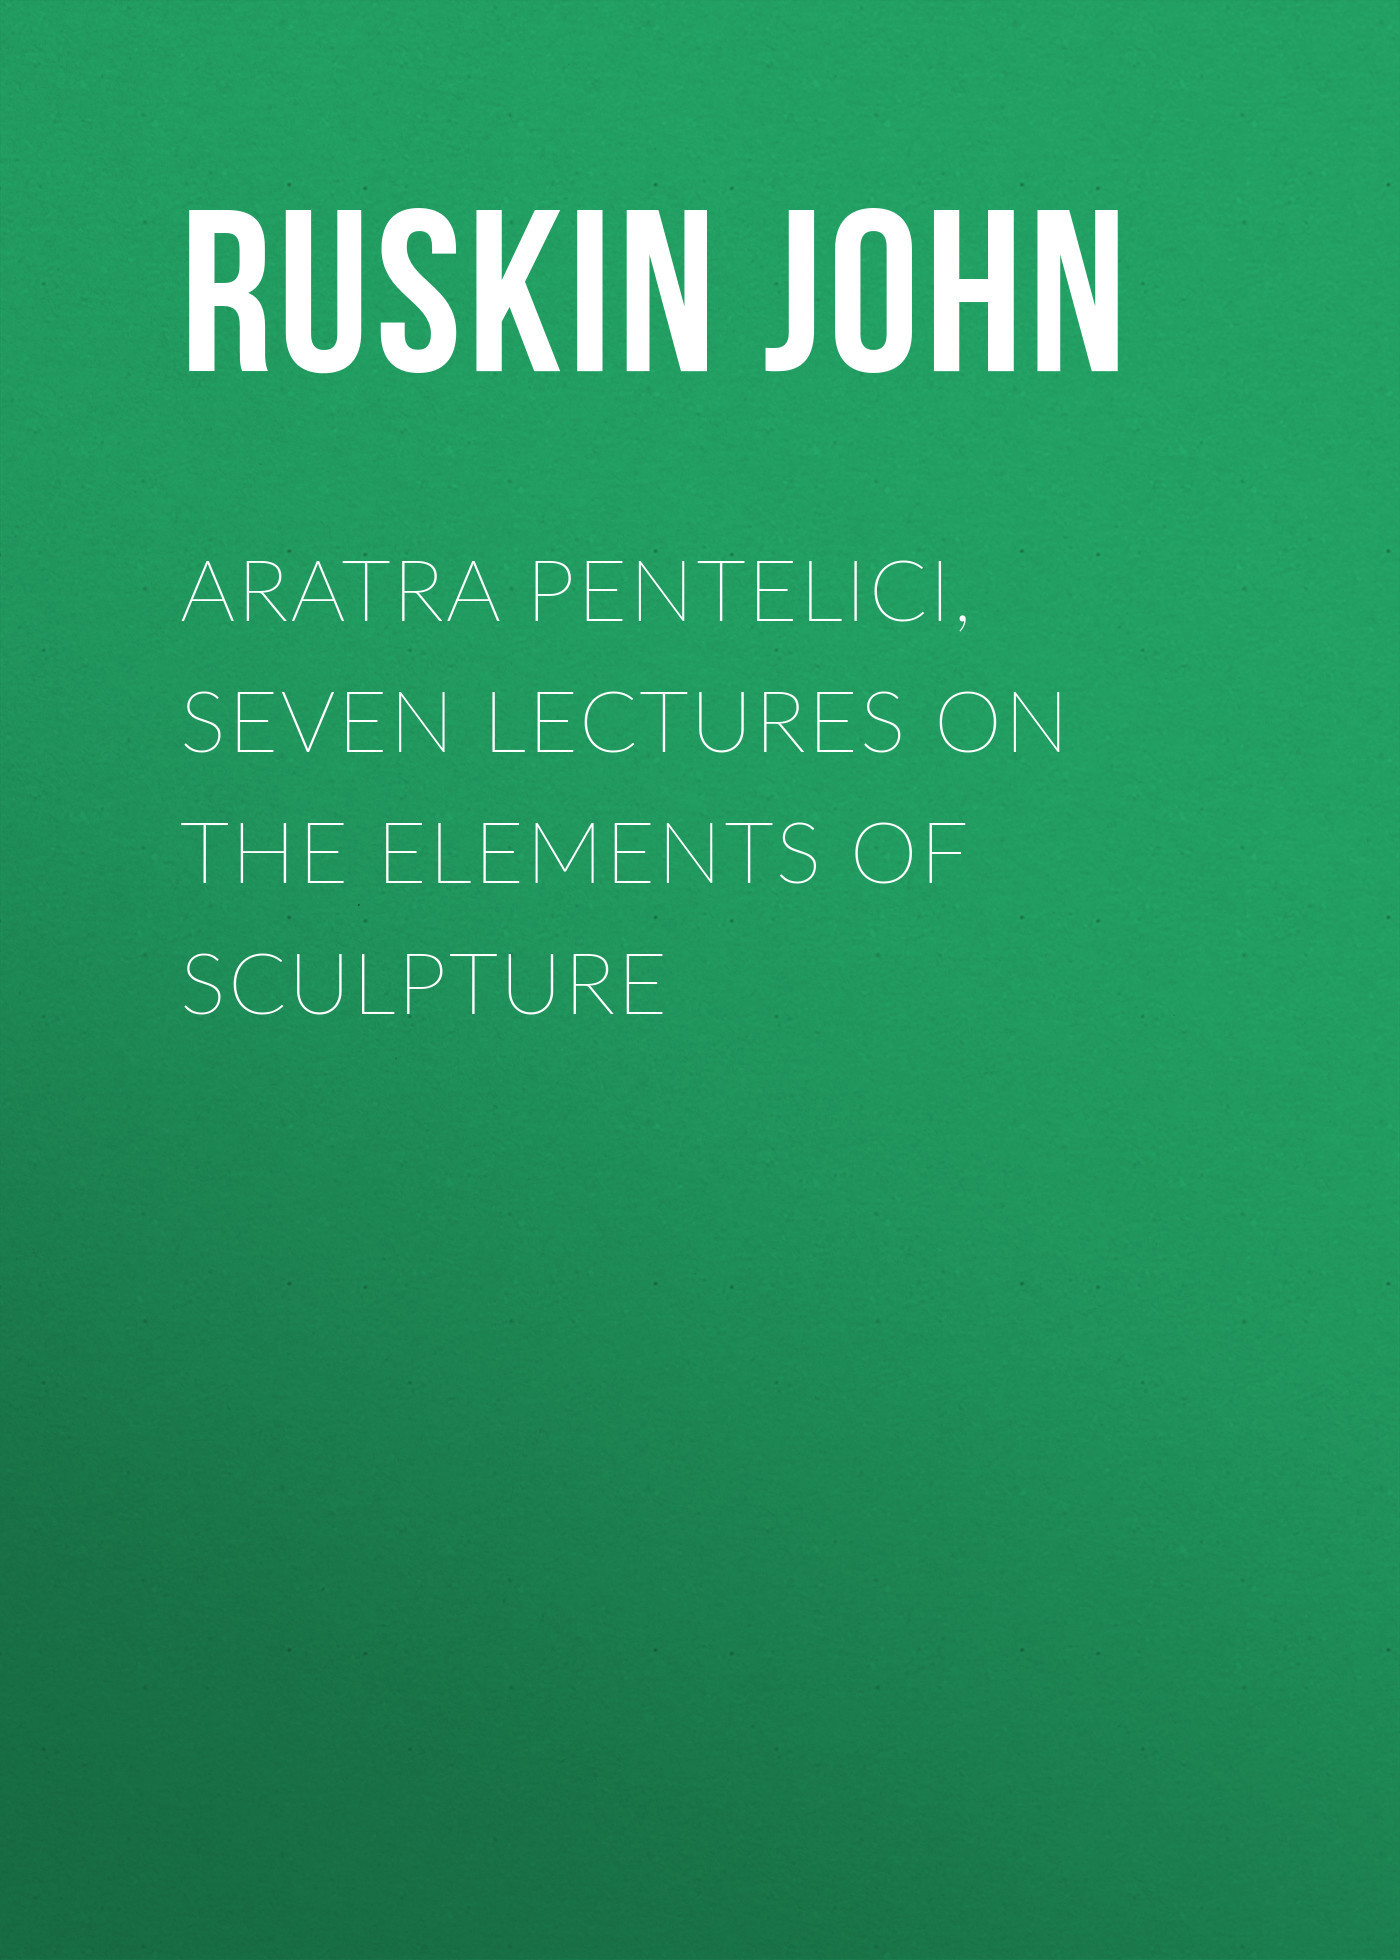 Ruskin John Aratra Pentelici, Seven Lectures on the Elements of Sculpture